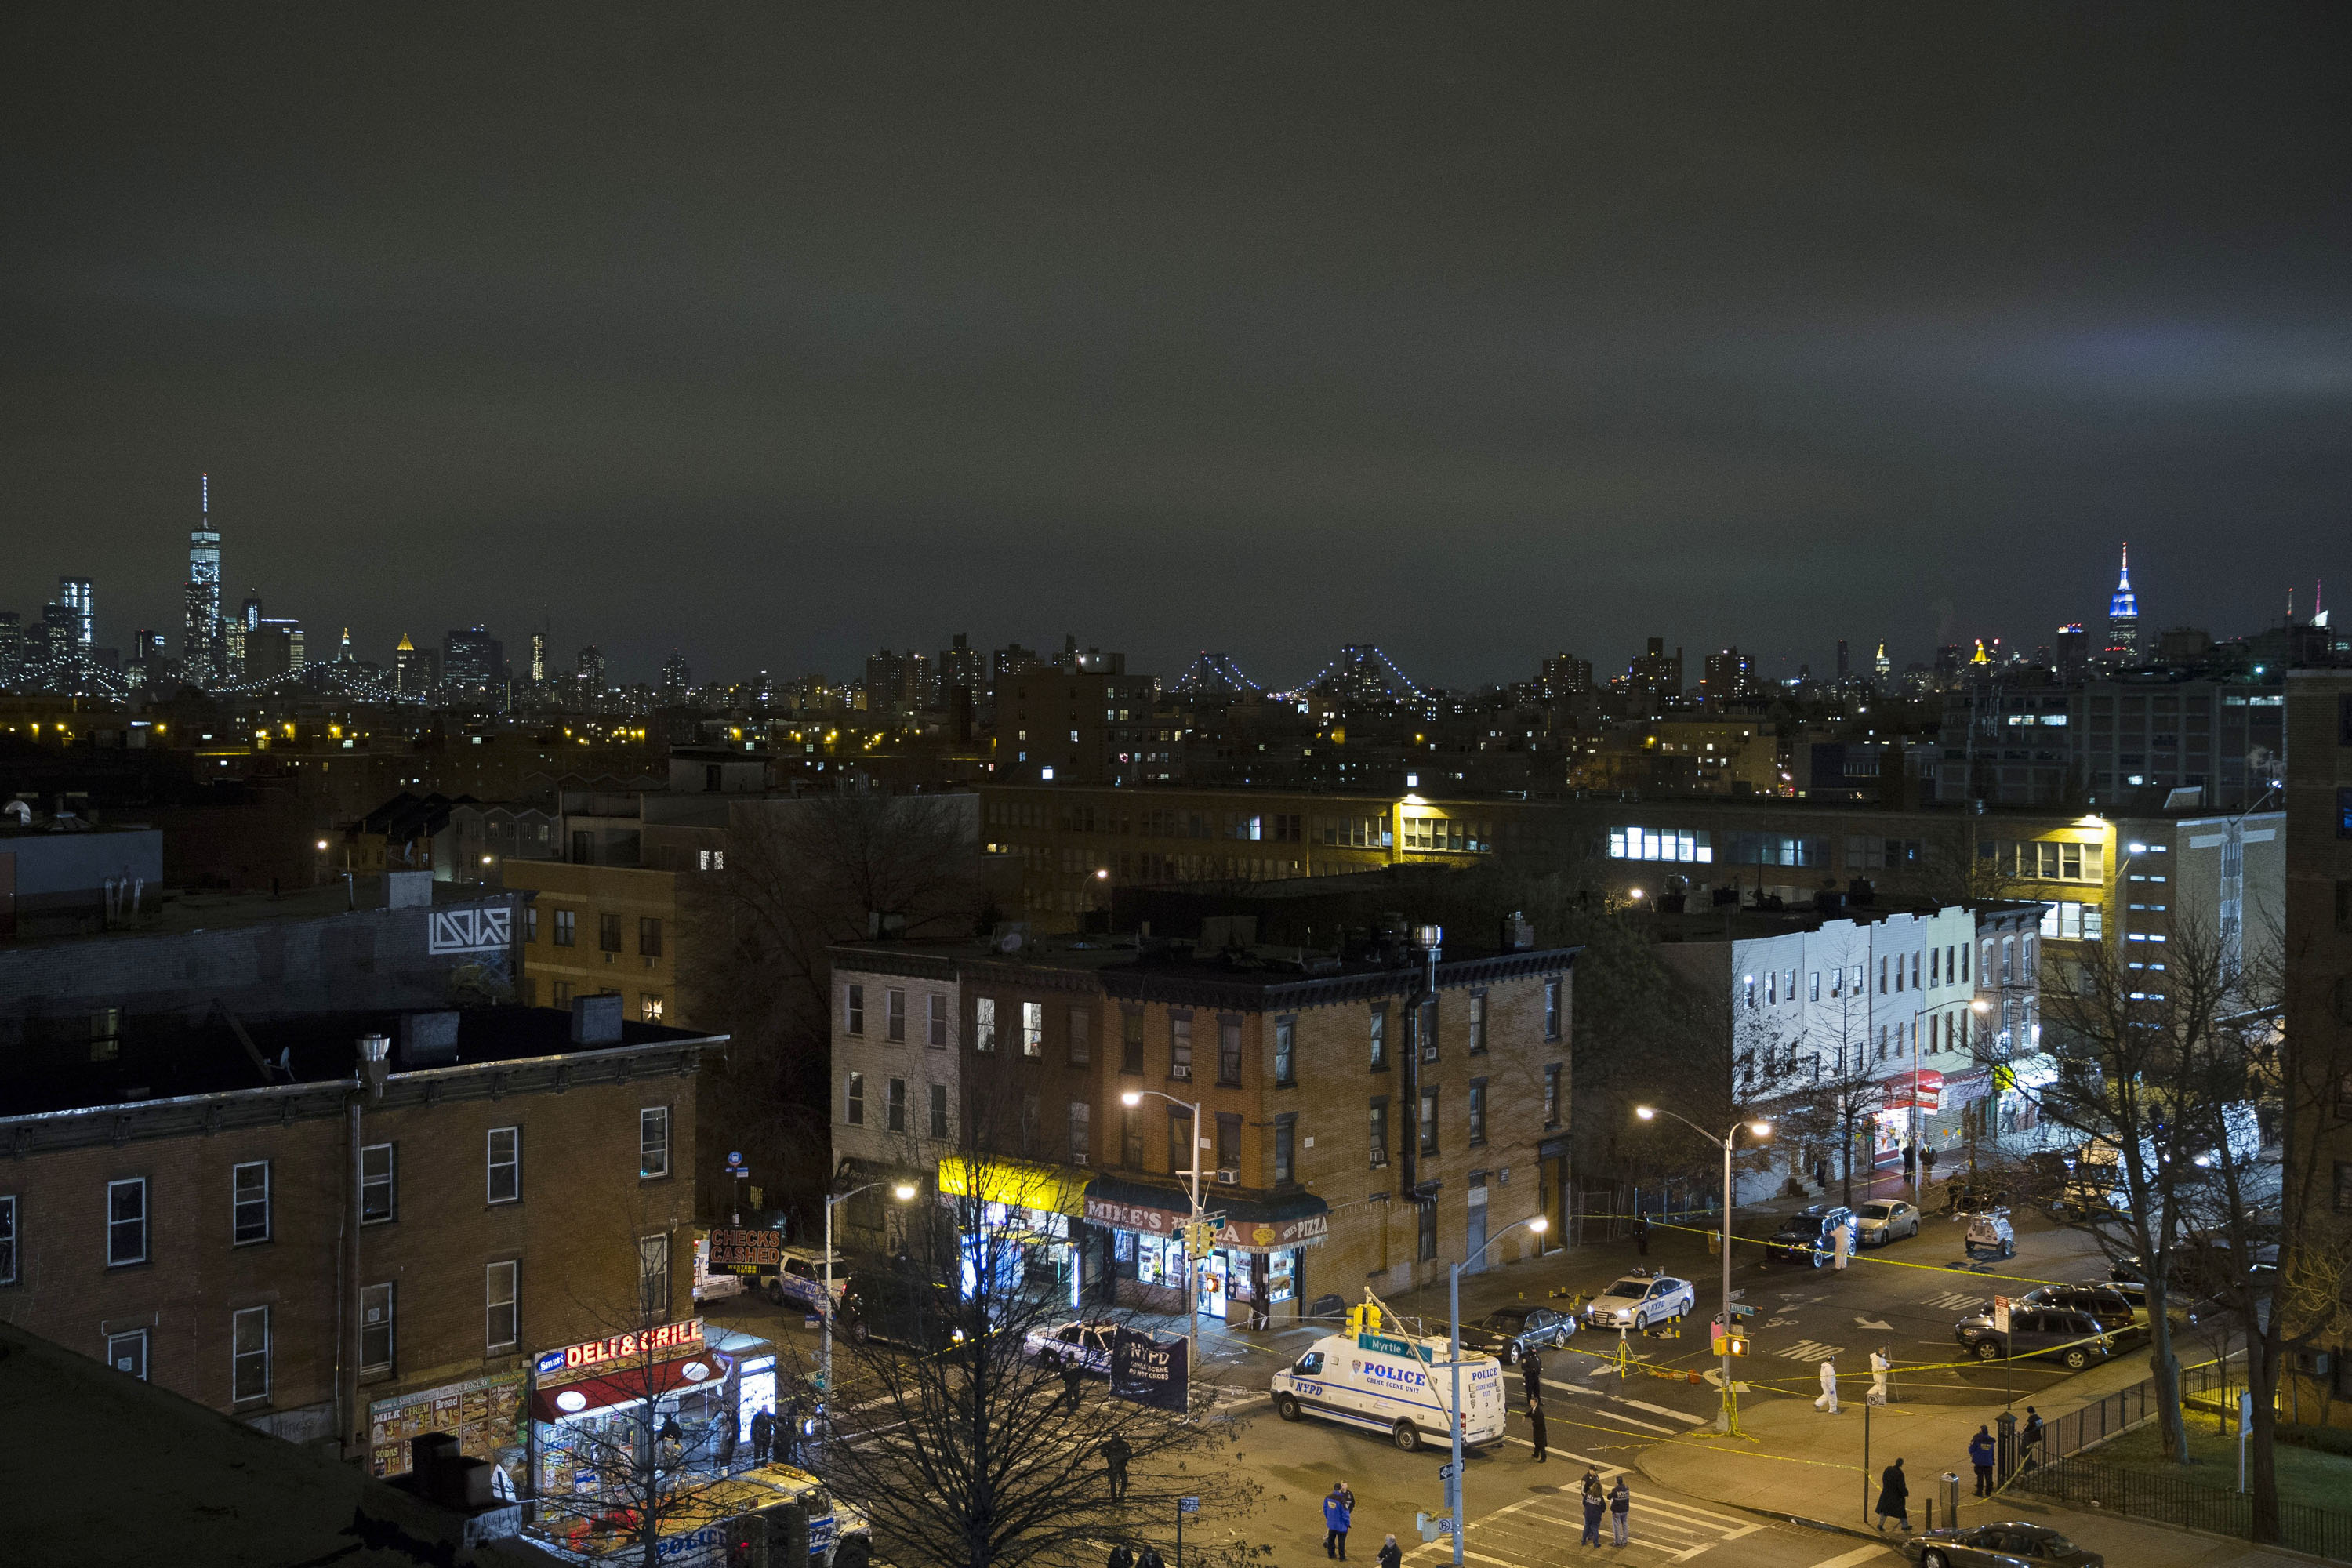 The skyline of Manhattan is seen in the background as investigators work at the scene where two NYPD officers were shot in the Brooklyn borough of New York City on Dec. 20, 2014